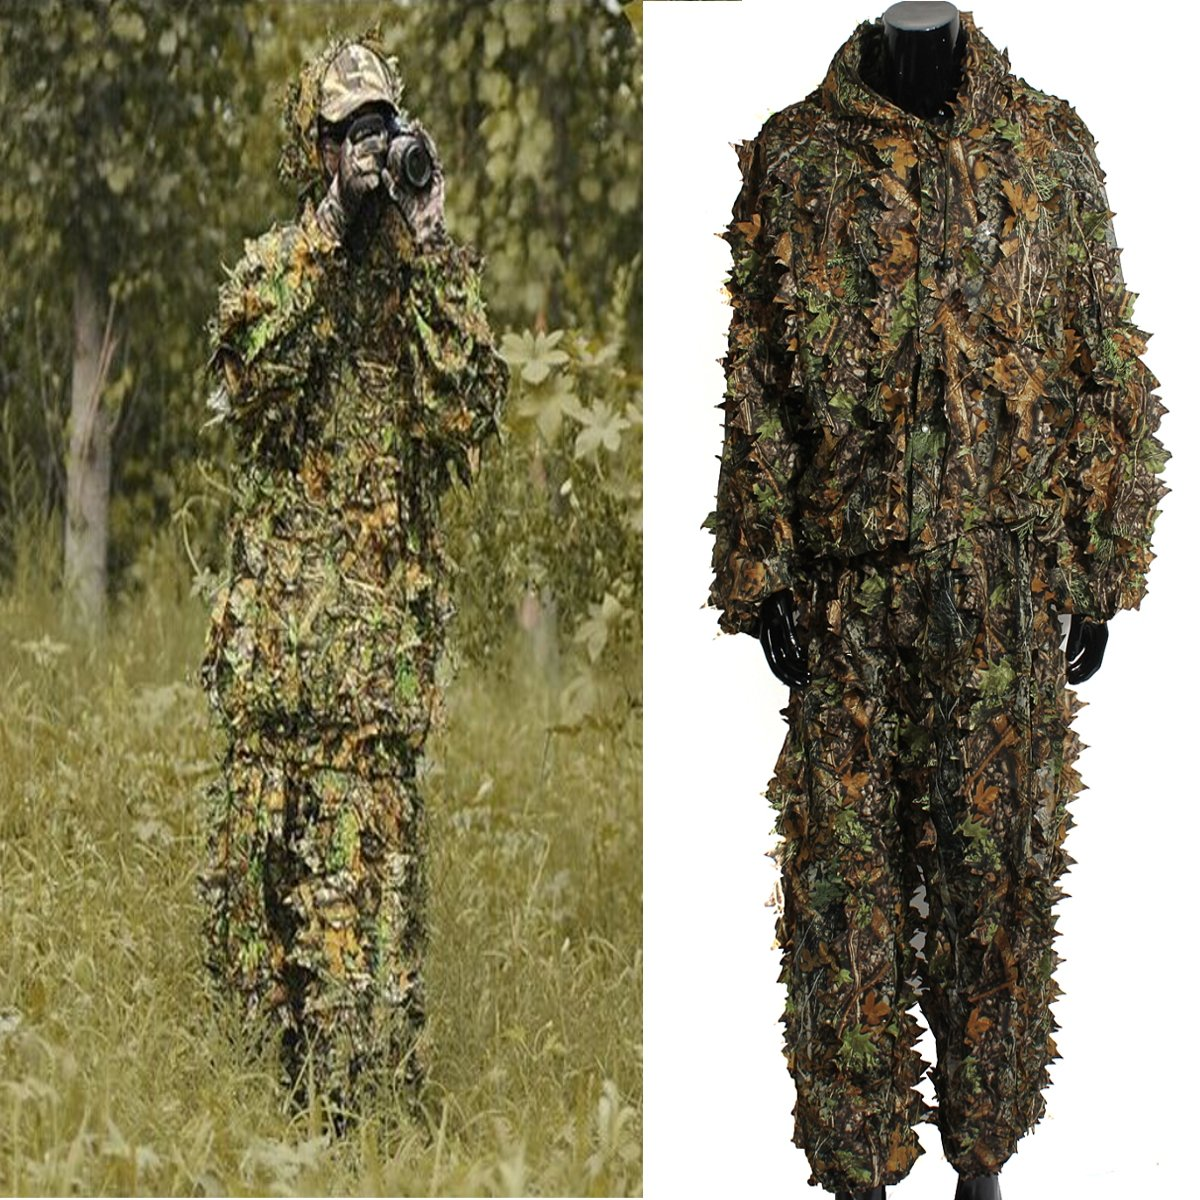 OUTERDO Camo Suits Ghillie Suits 3D Leaves Woodland Camouflage Clothing  Army Sniper Military Clothes and Pants for Jungle Hunting, Shooting,  Airsoft,